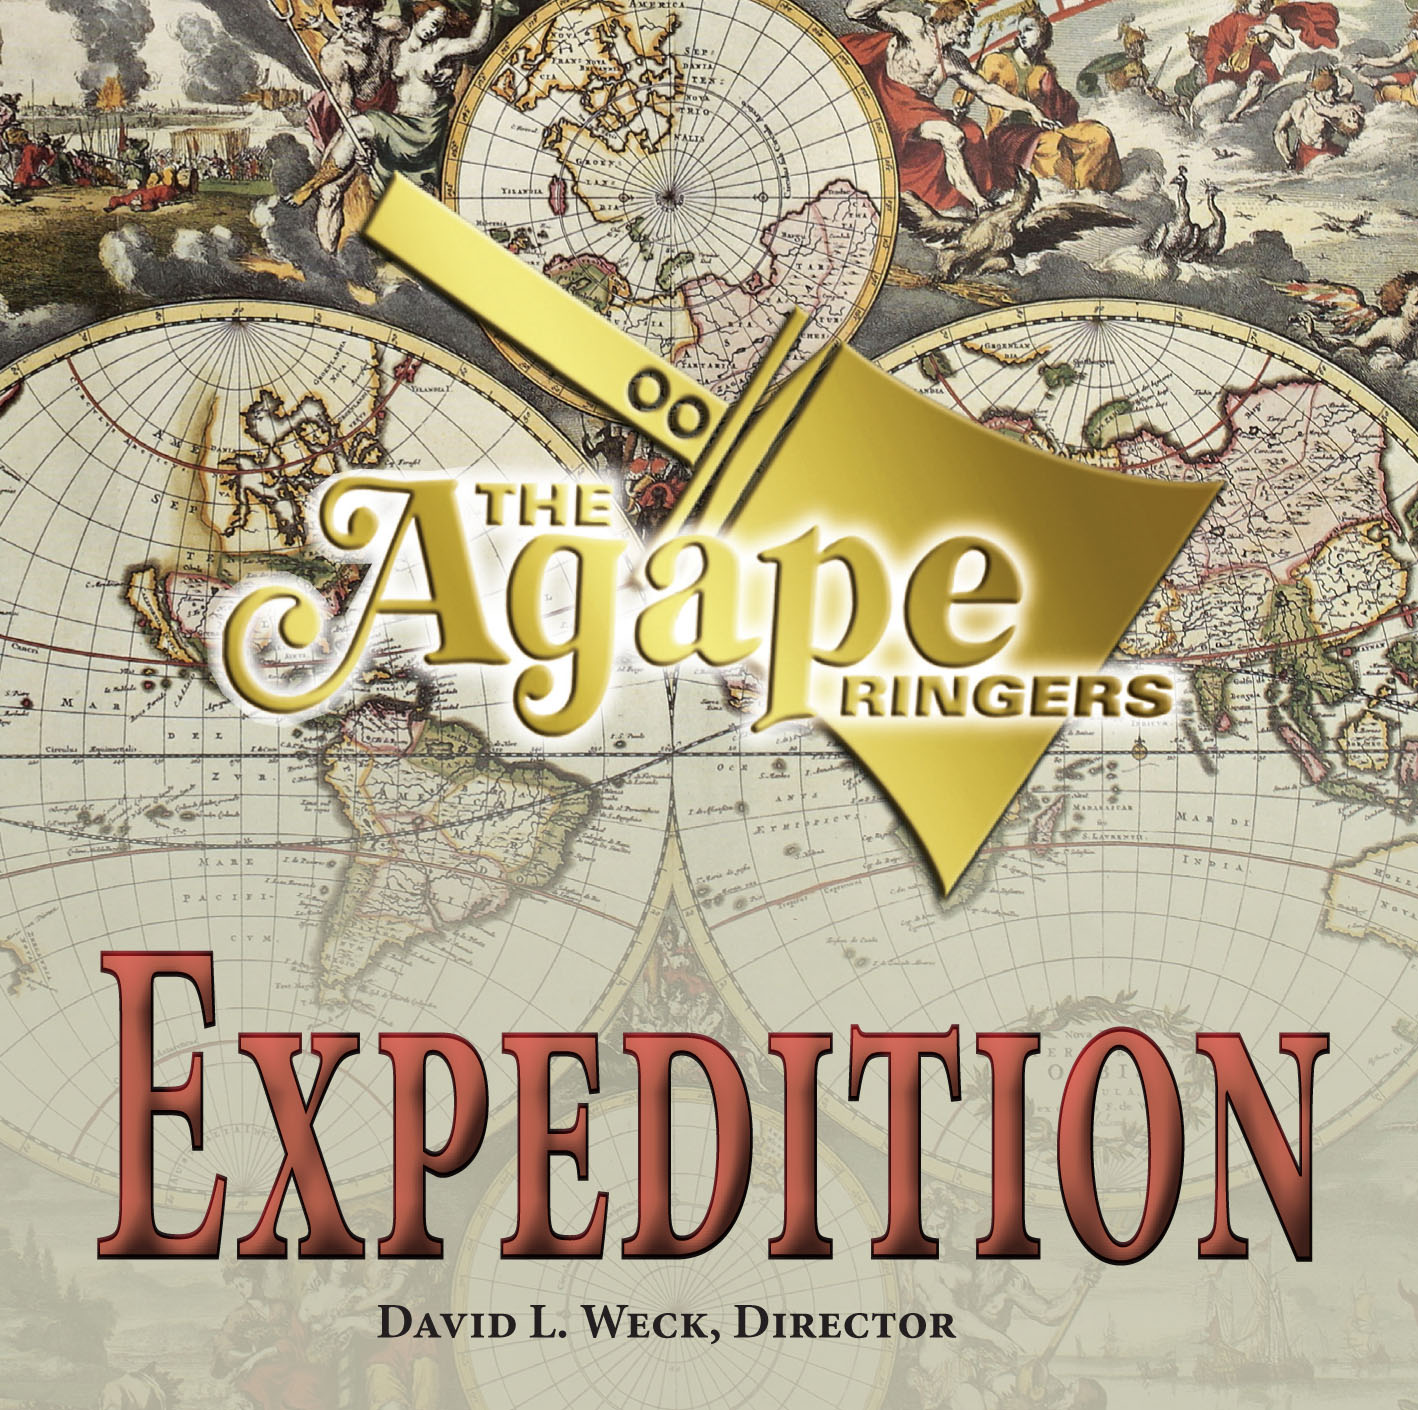 EXPEDITION-AGAPE RINGERS CD Cover Image